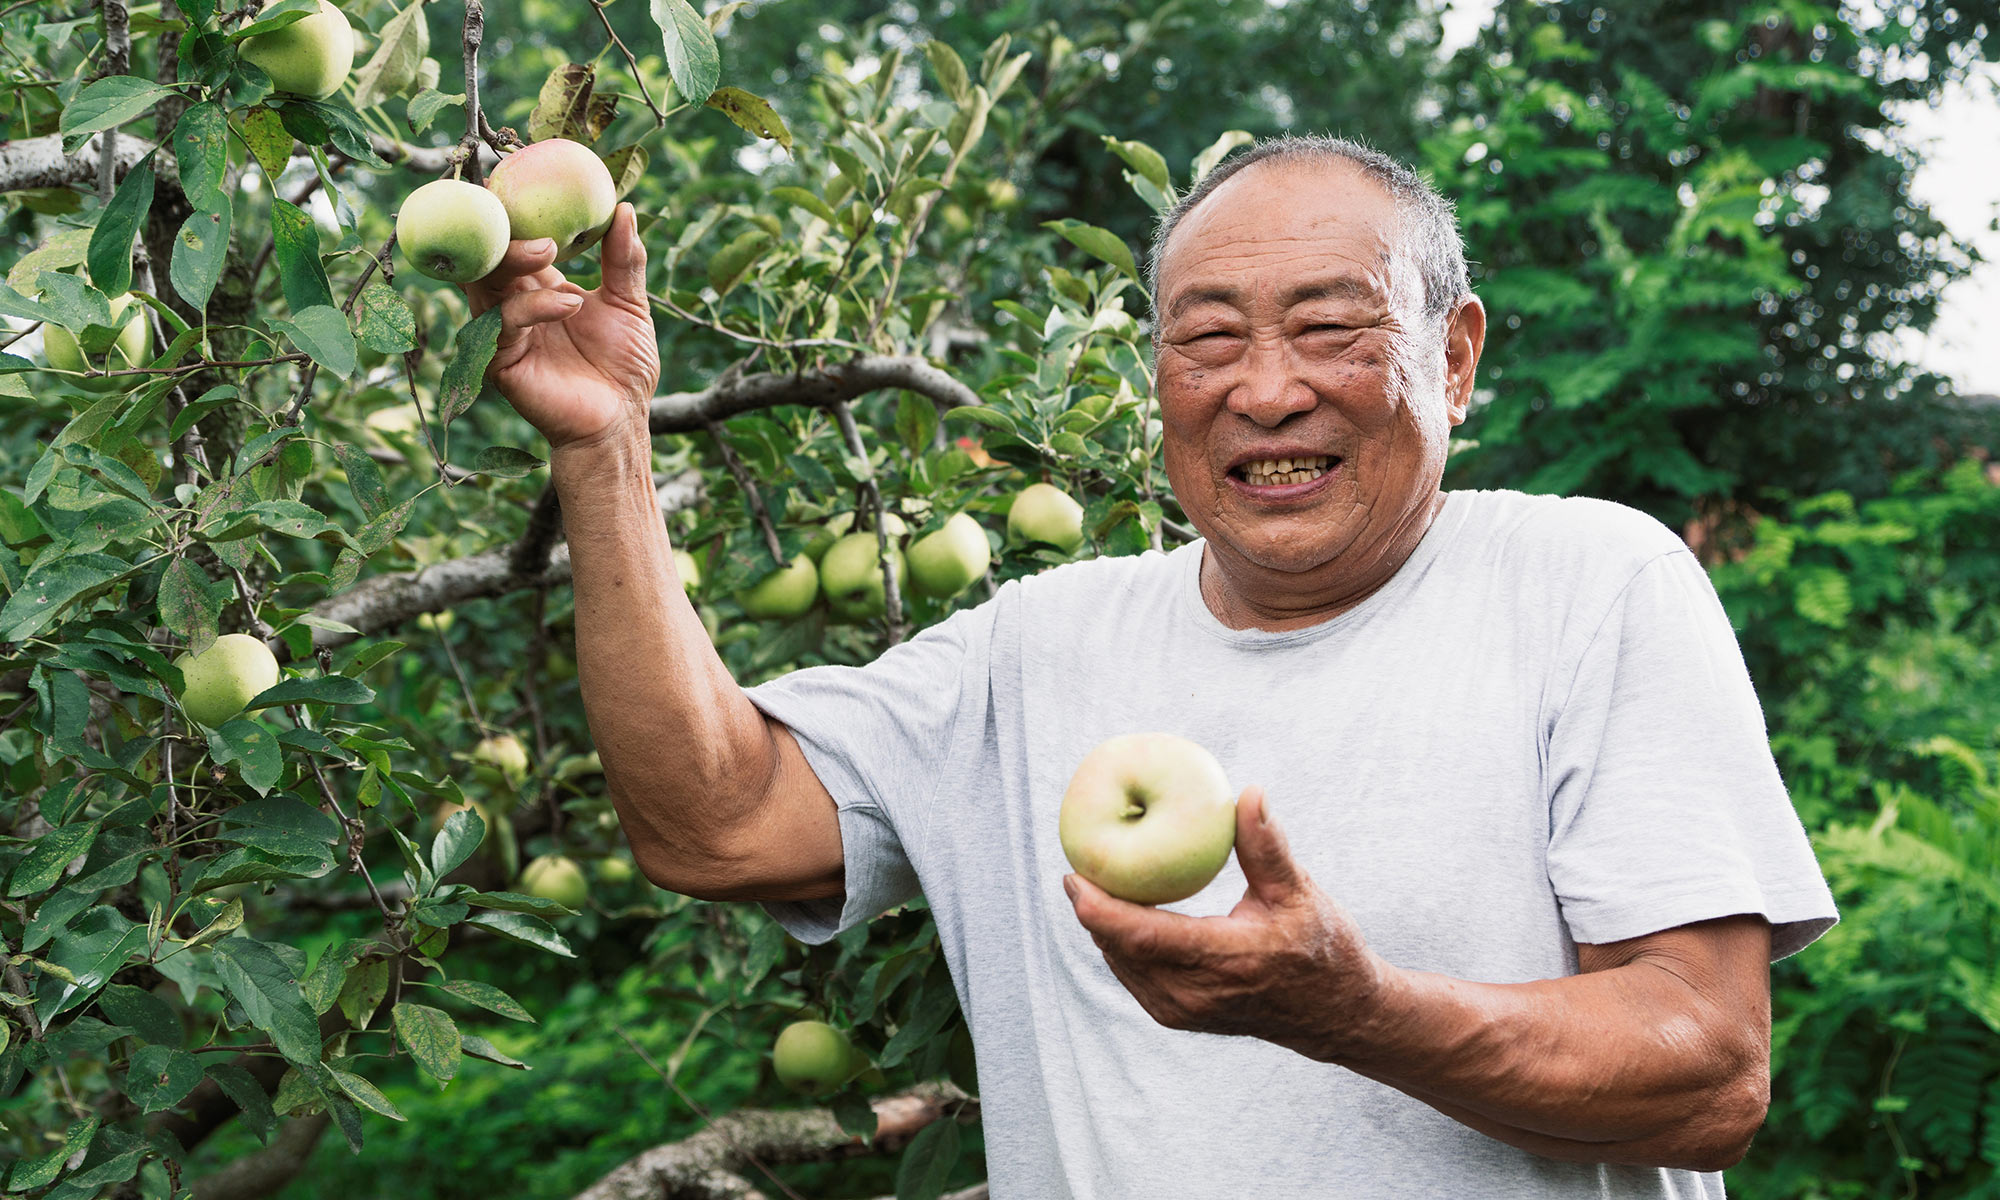 Senior man picking green apples.